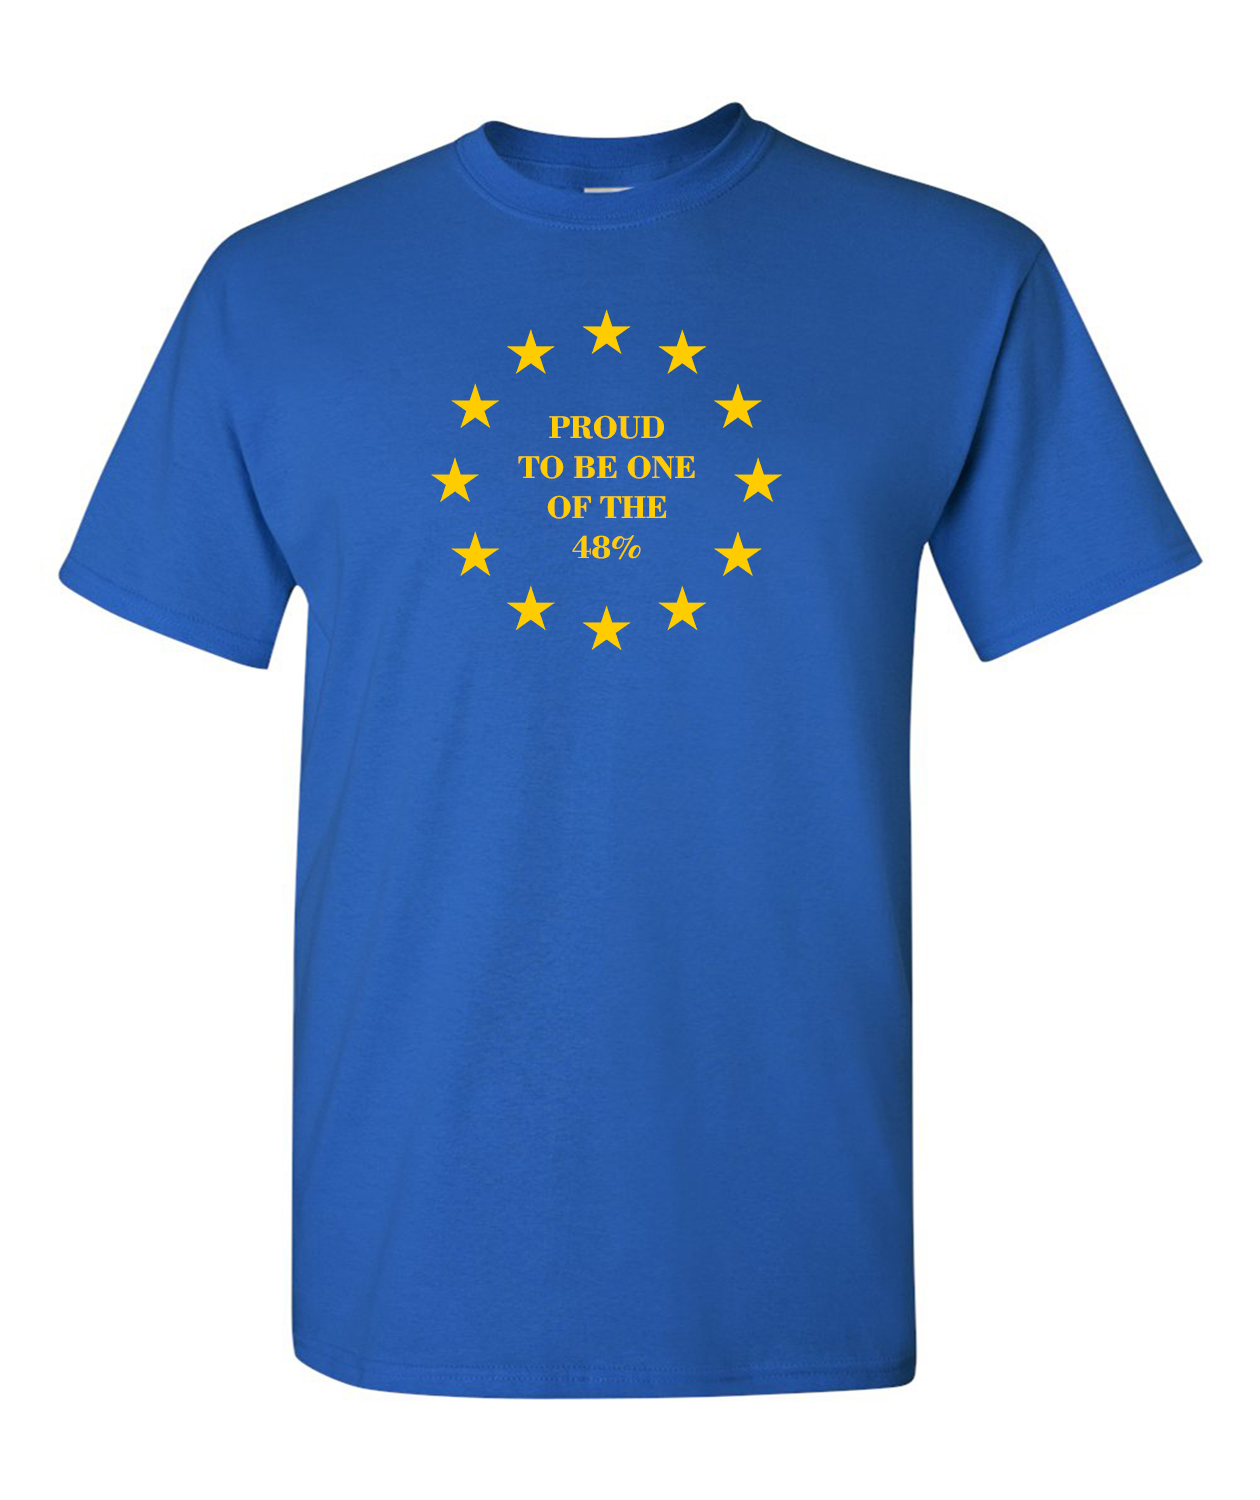 Proud To Be One of the 48% - Brexit T-Shirt